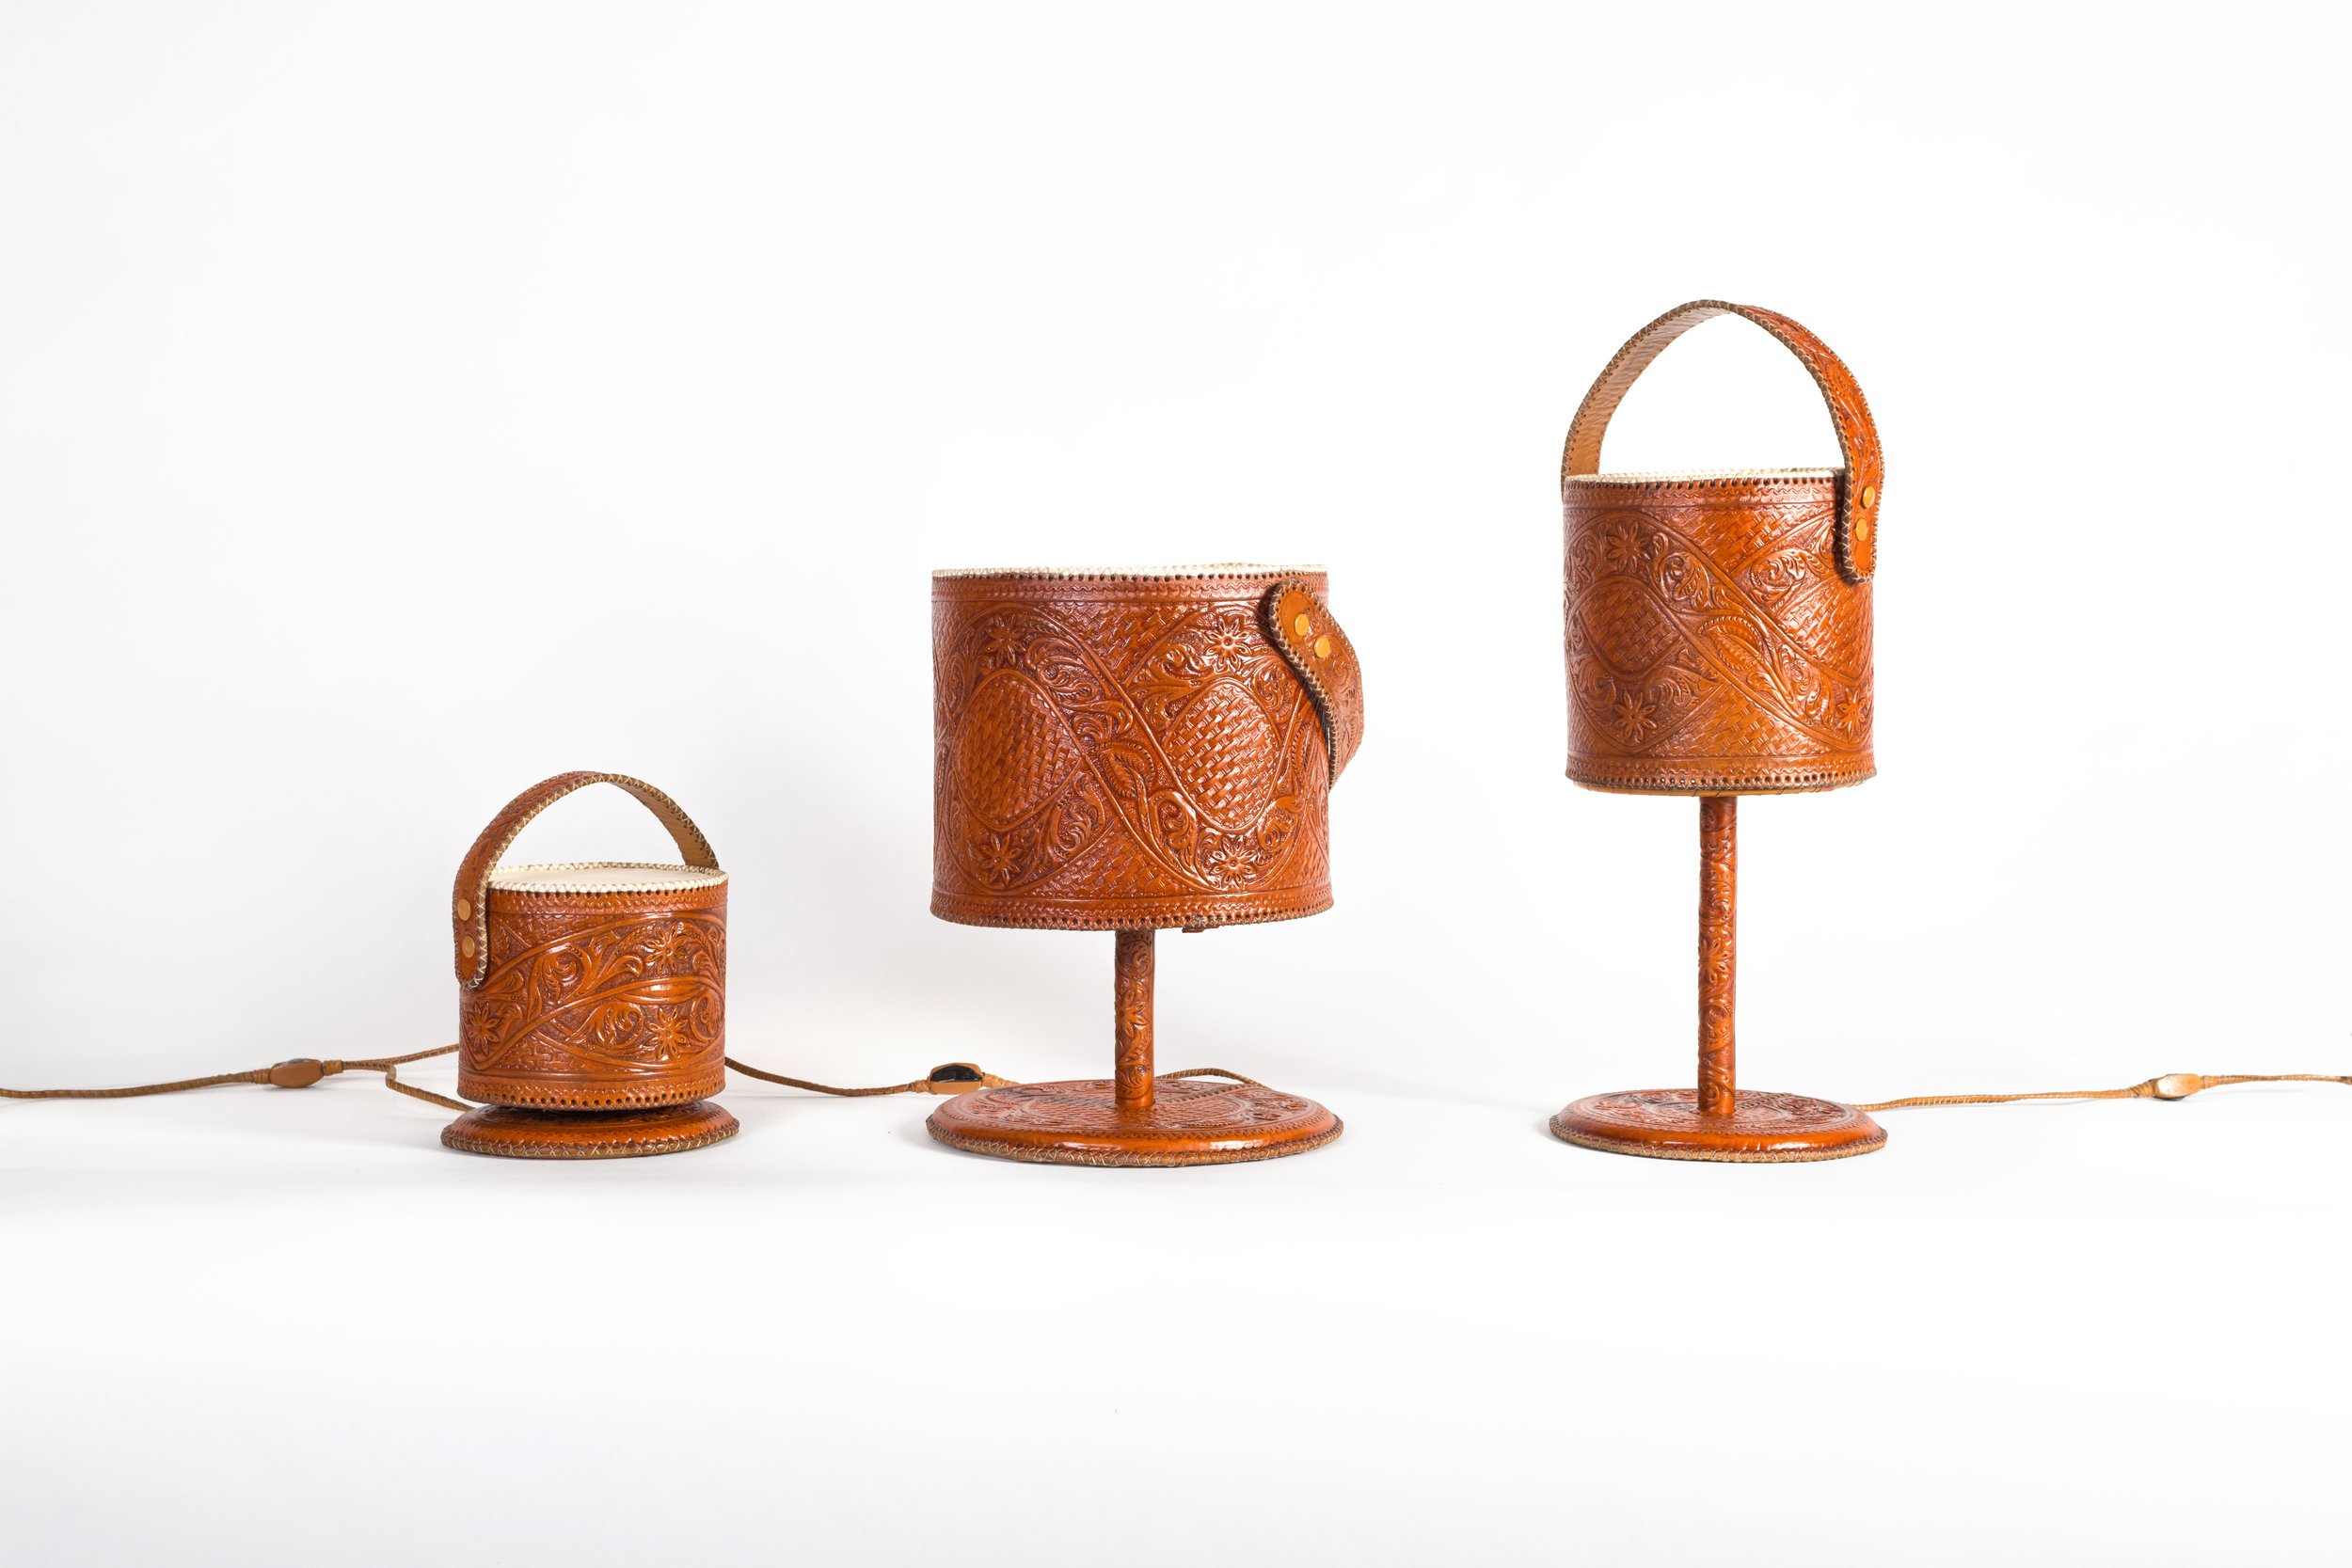 jorge-diego-etienne-chiseled-leather-lamps-1